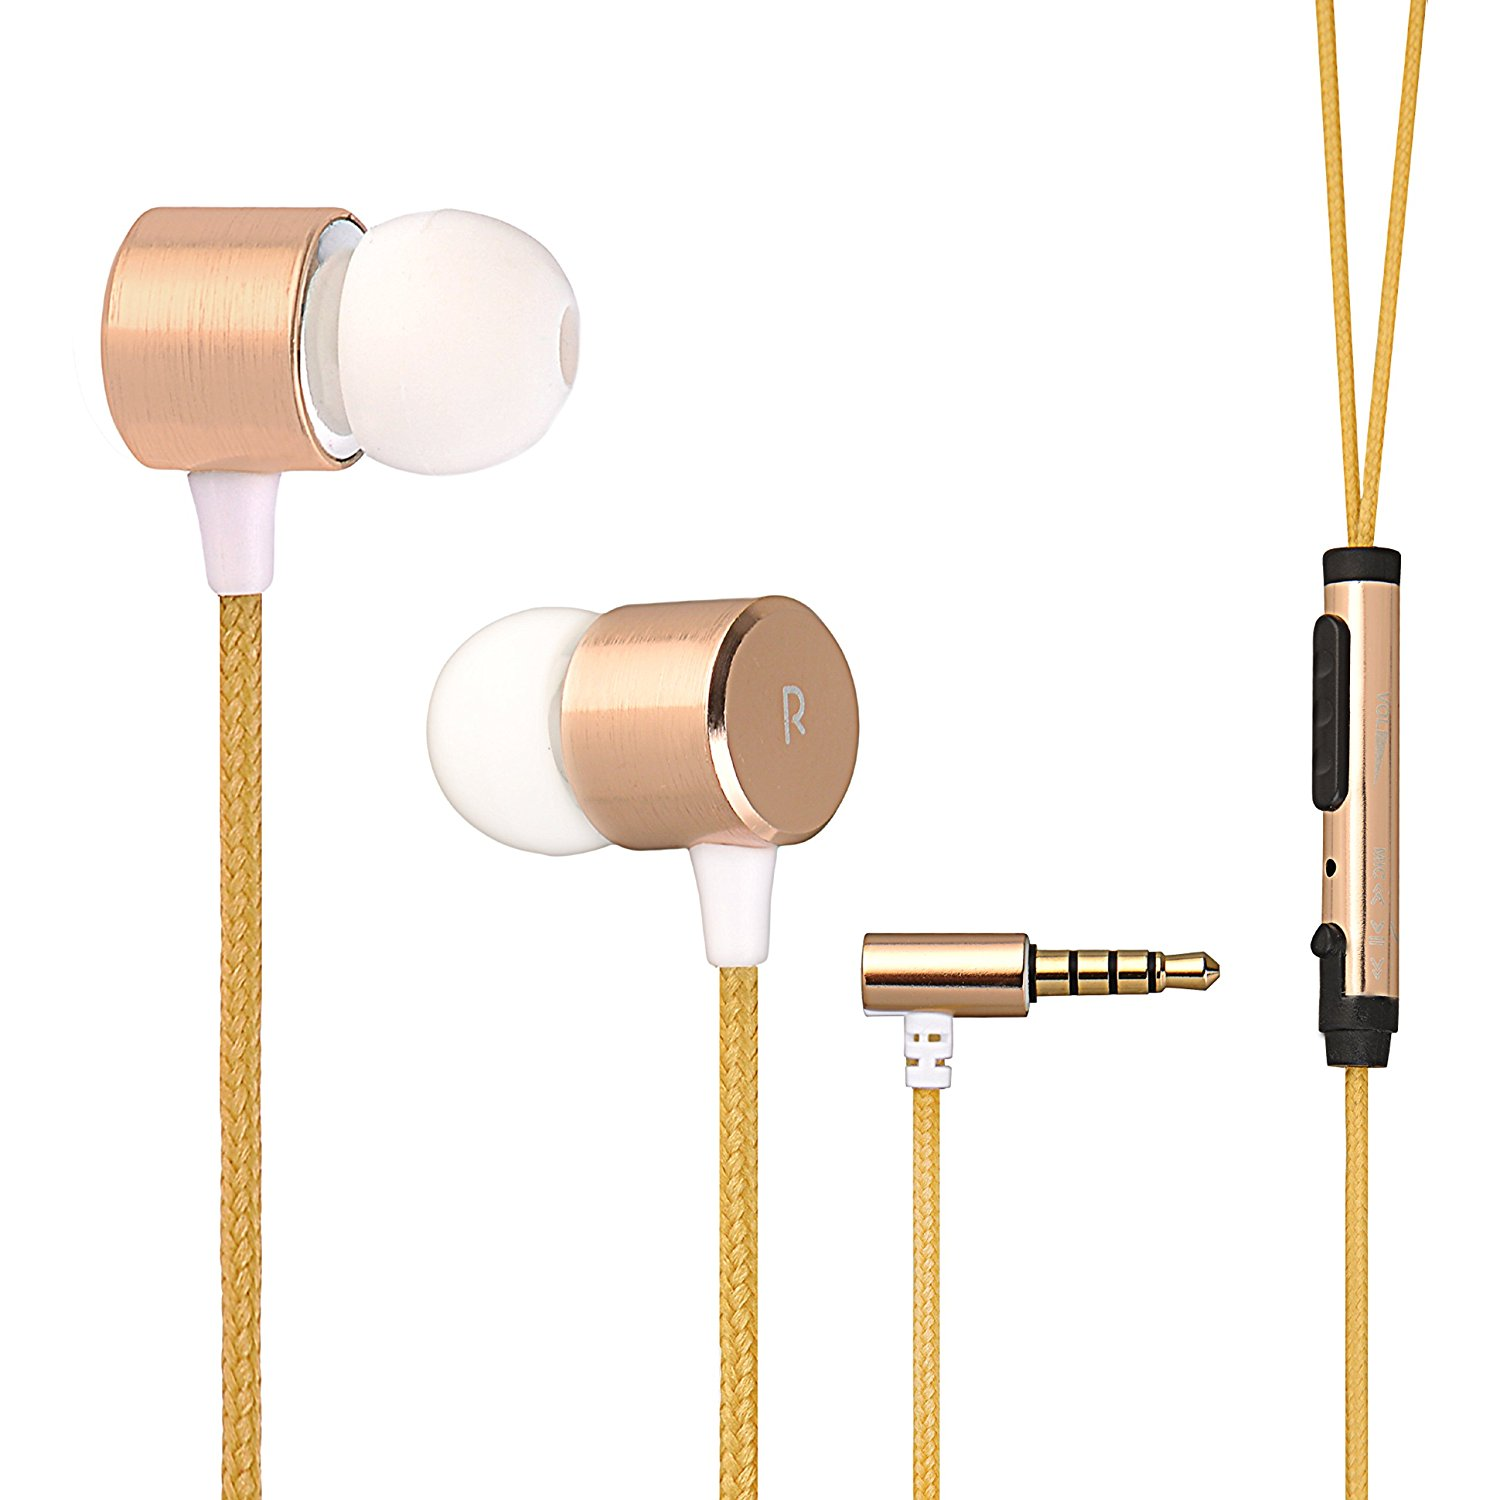 Wired metal earphone with fabric cable